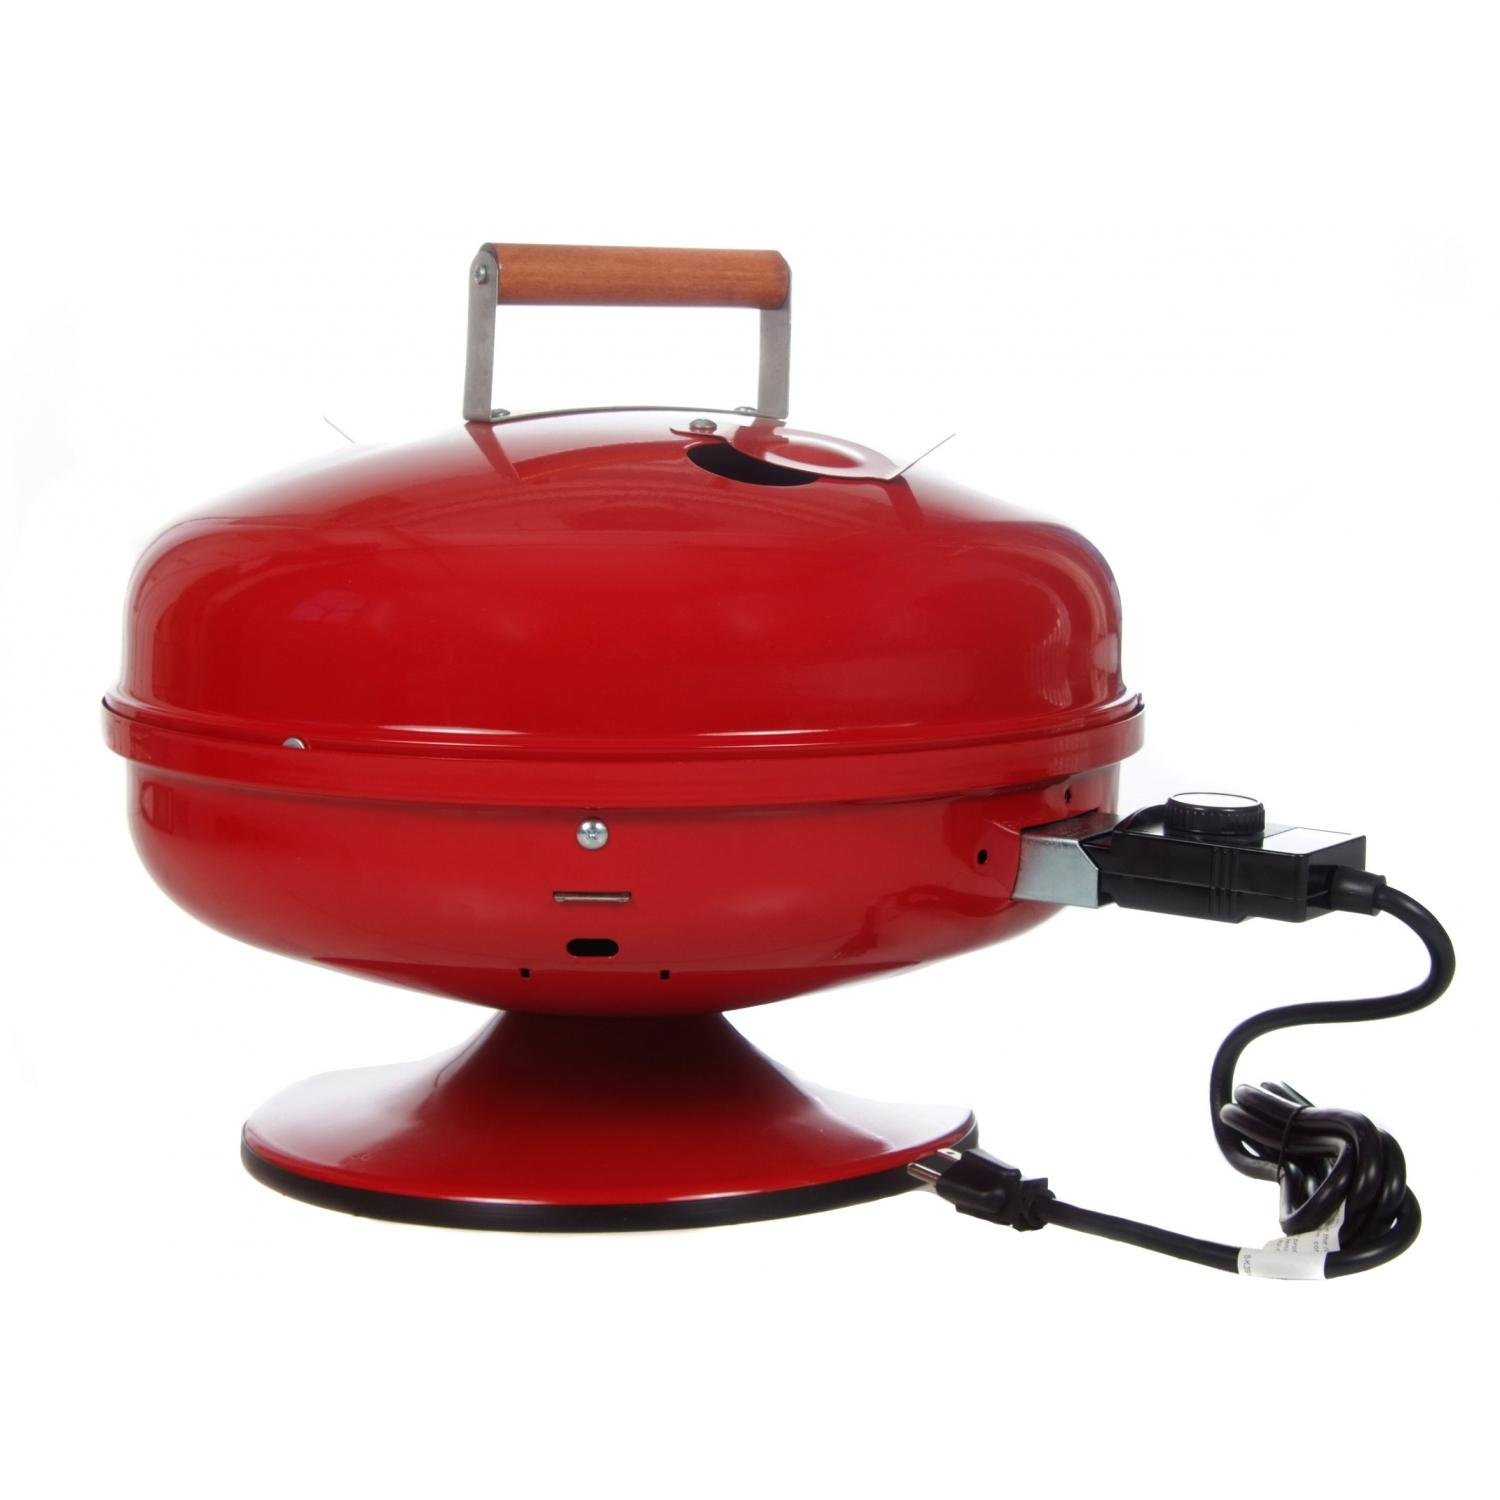 Meco Electric Grills - 2120 Lock-n-go Portable Electric Bbq Grill - Red